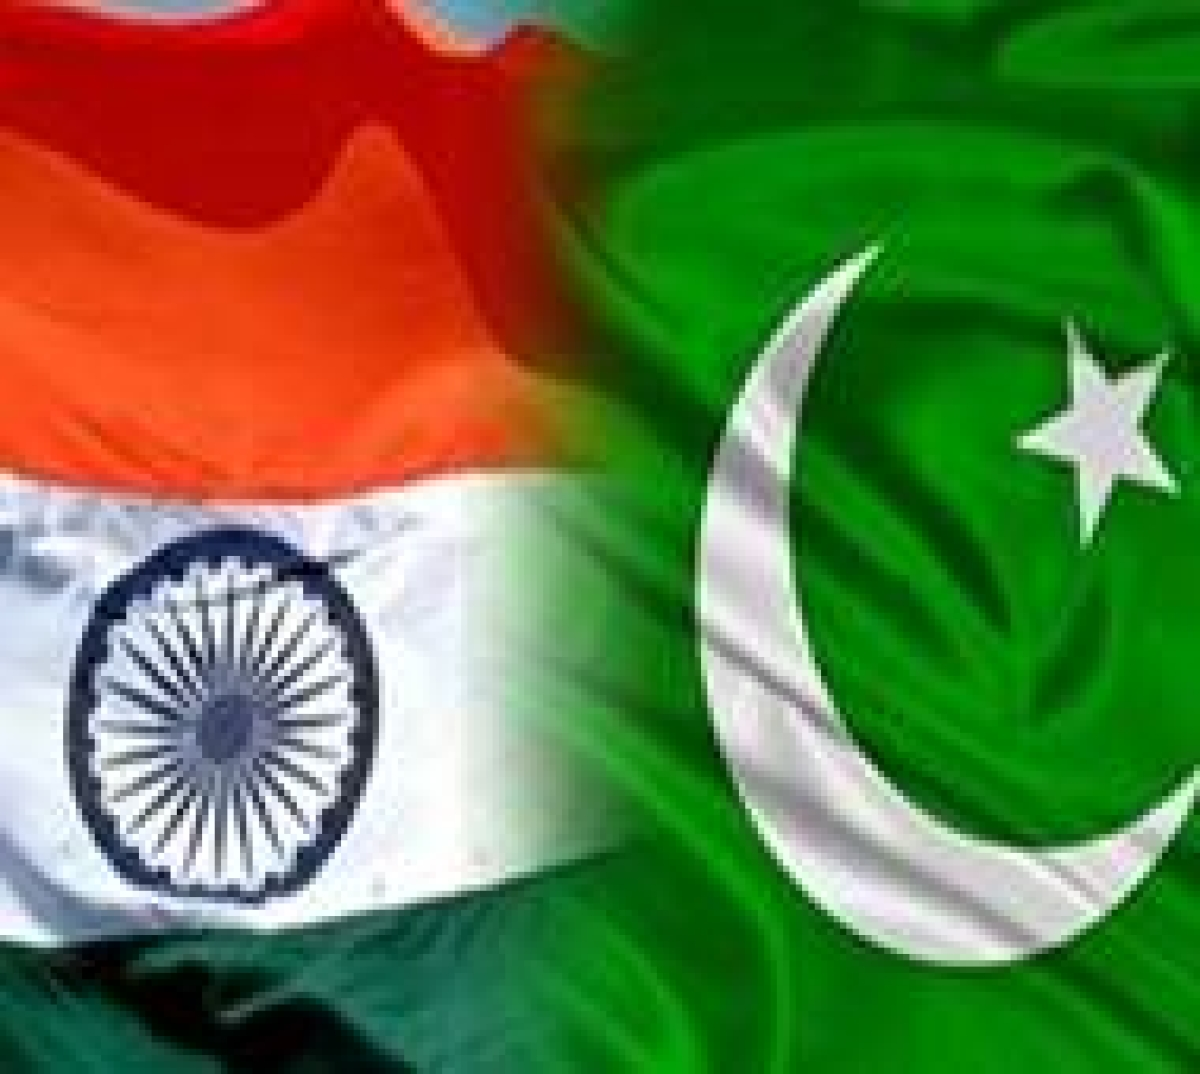 Pakistan protests RAW officer's 'spying activities'